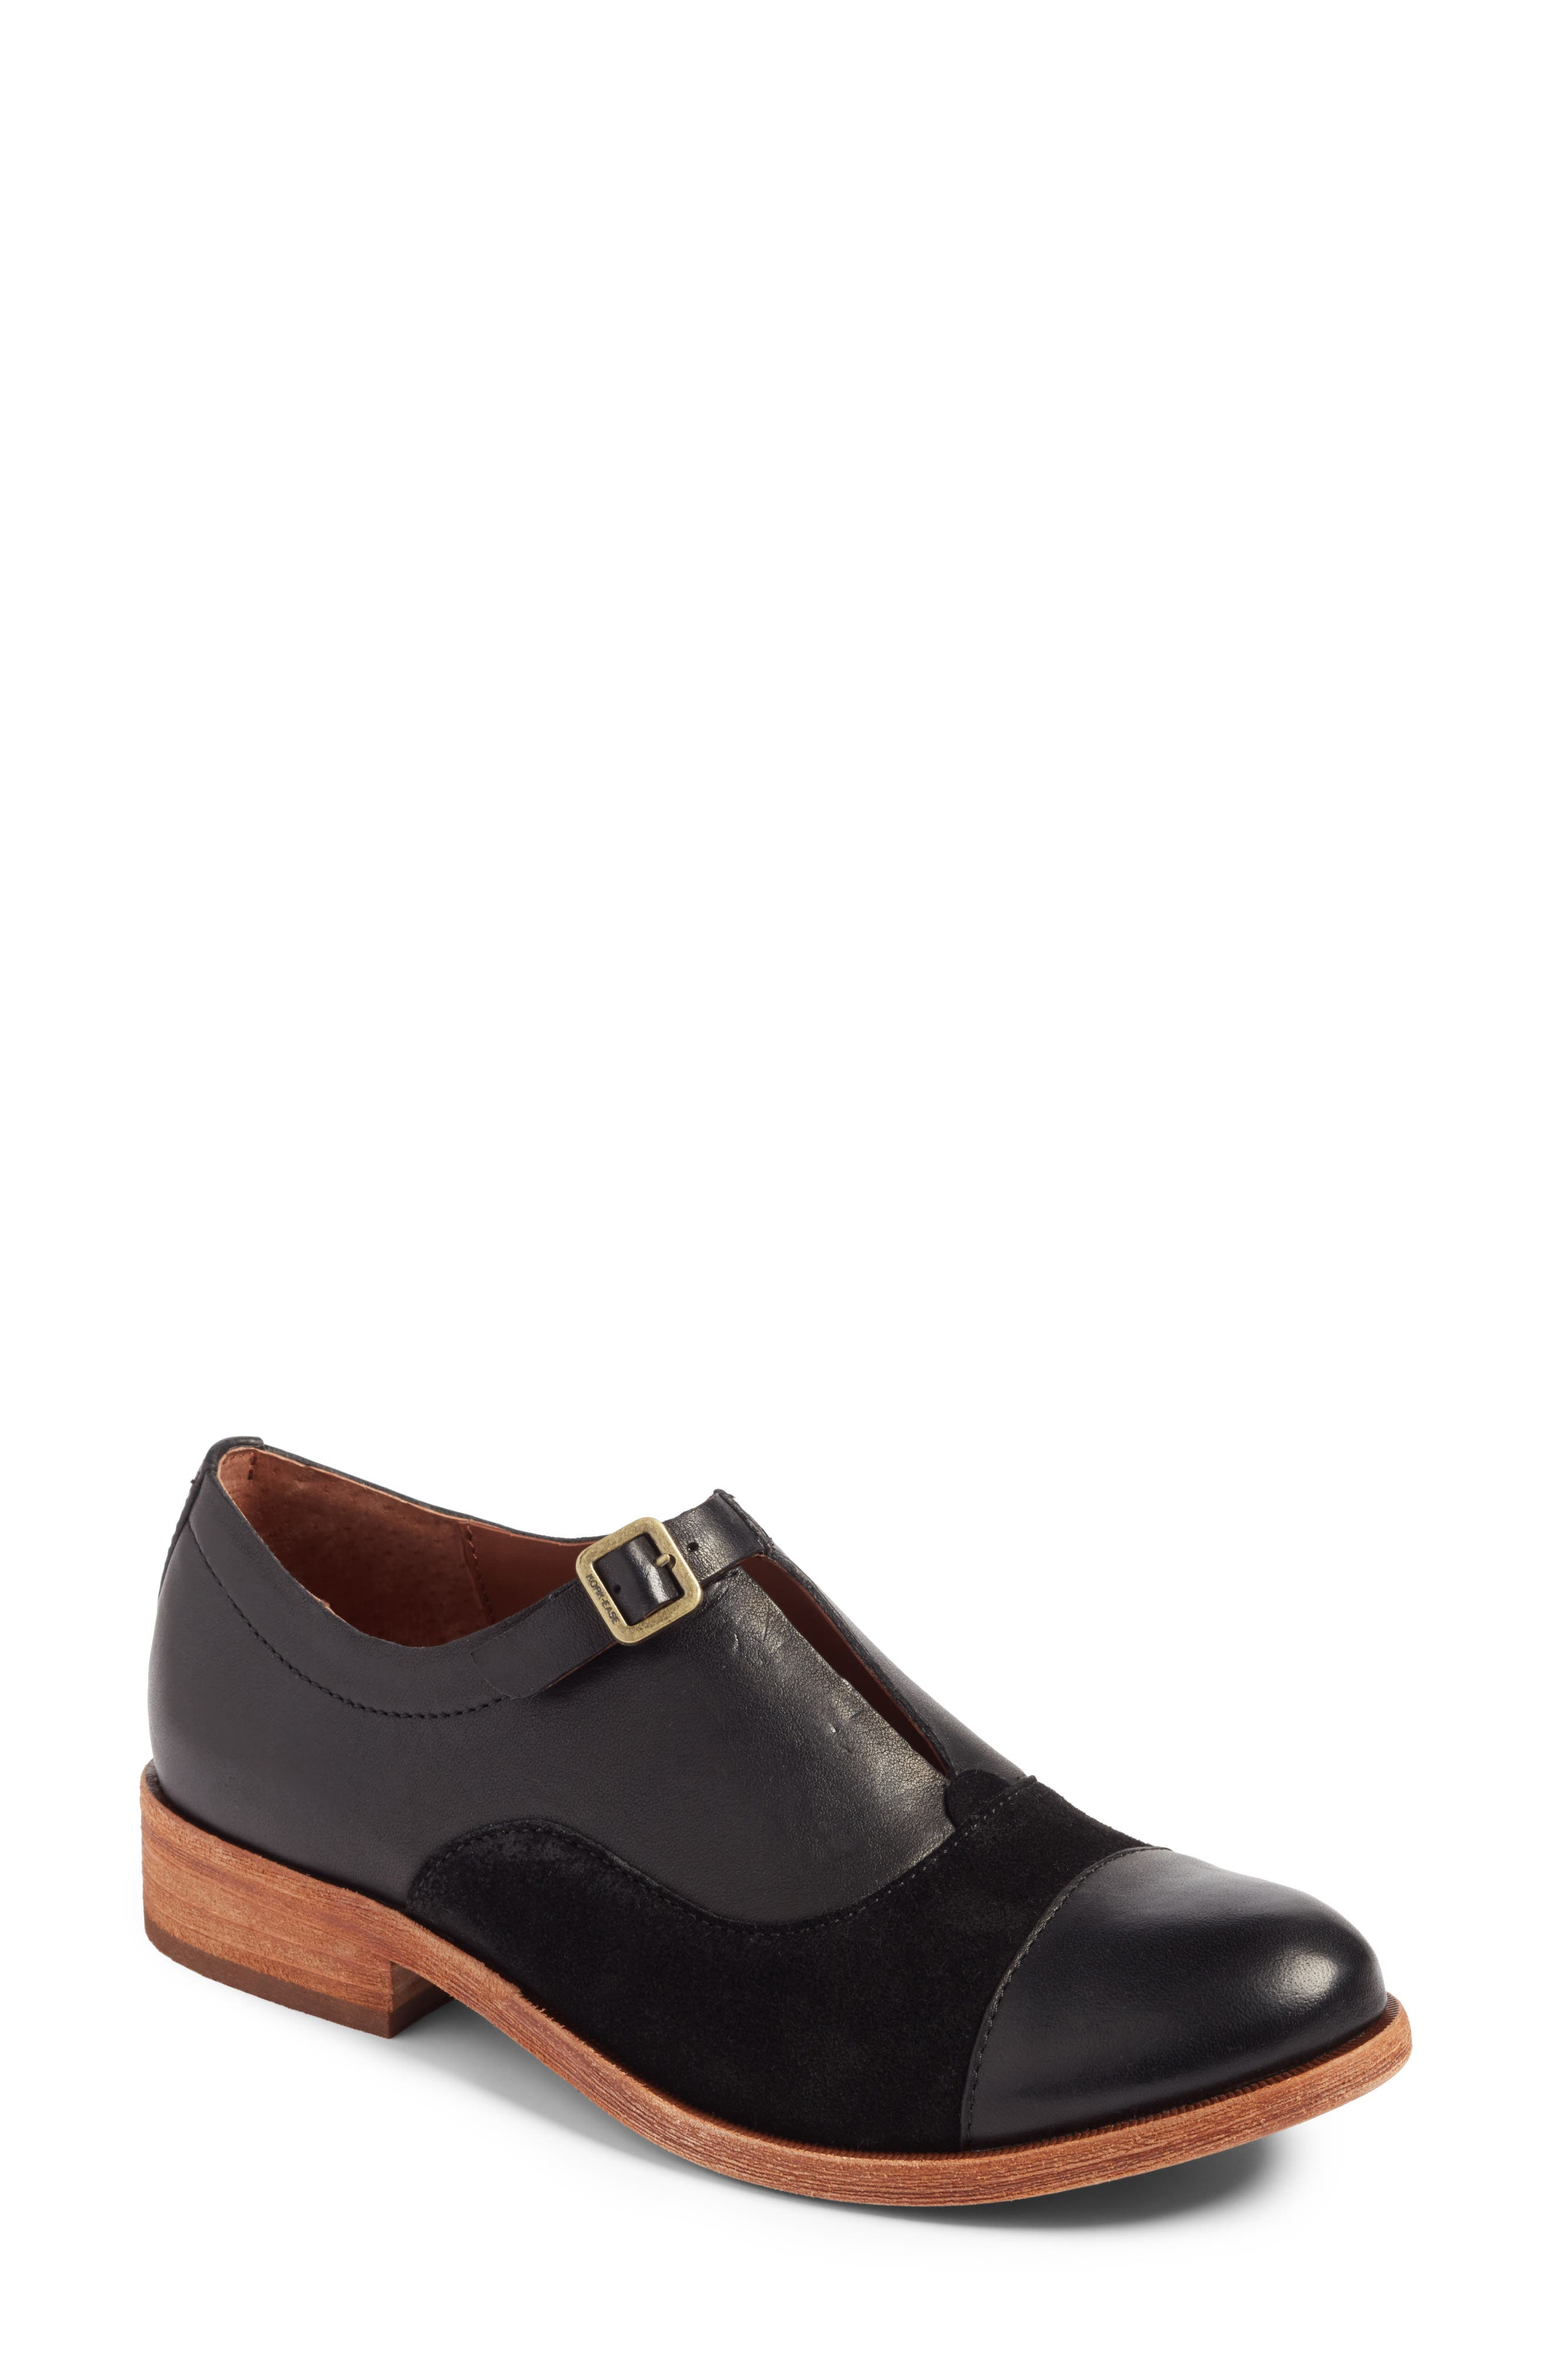 Main Image - Kork-Ease® 'Niseda' Oxford (Women)